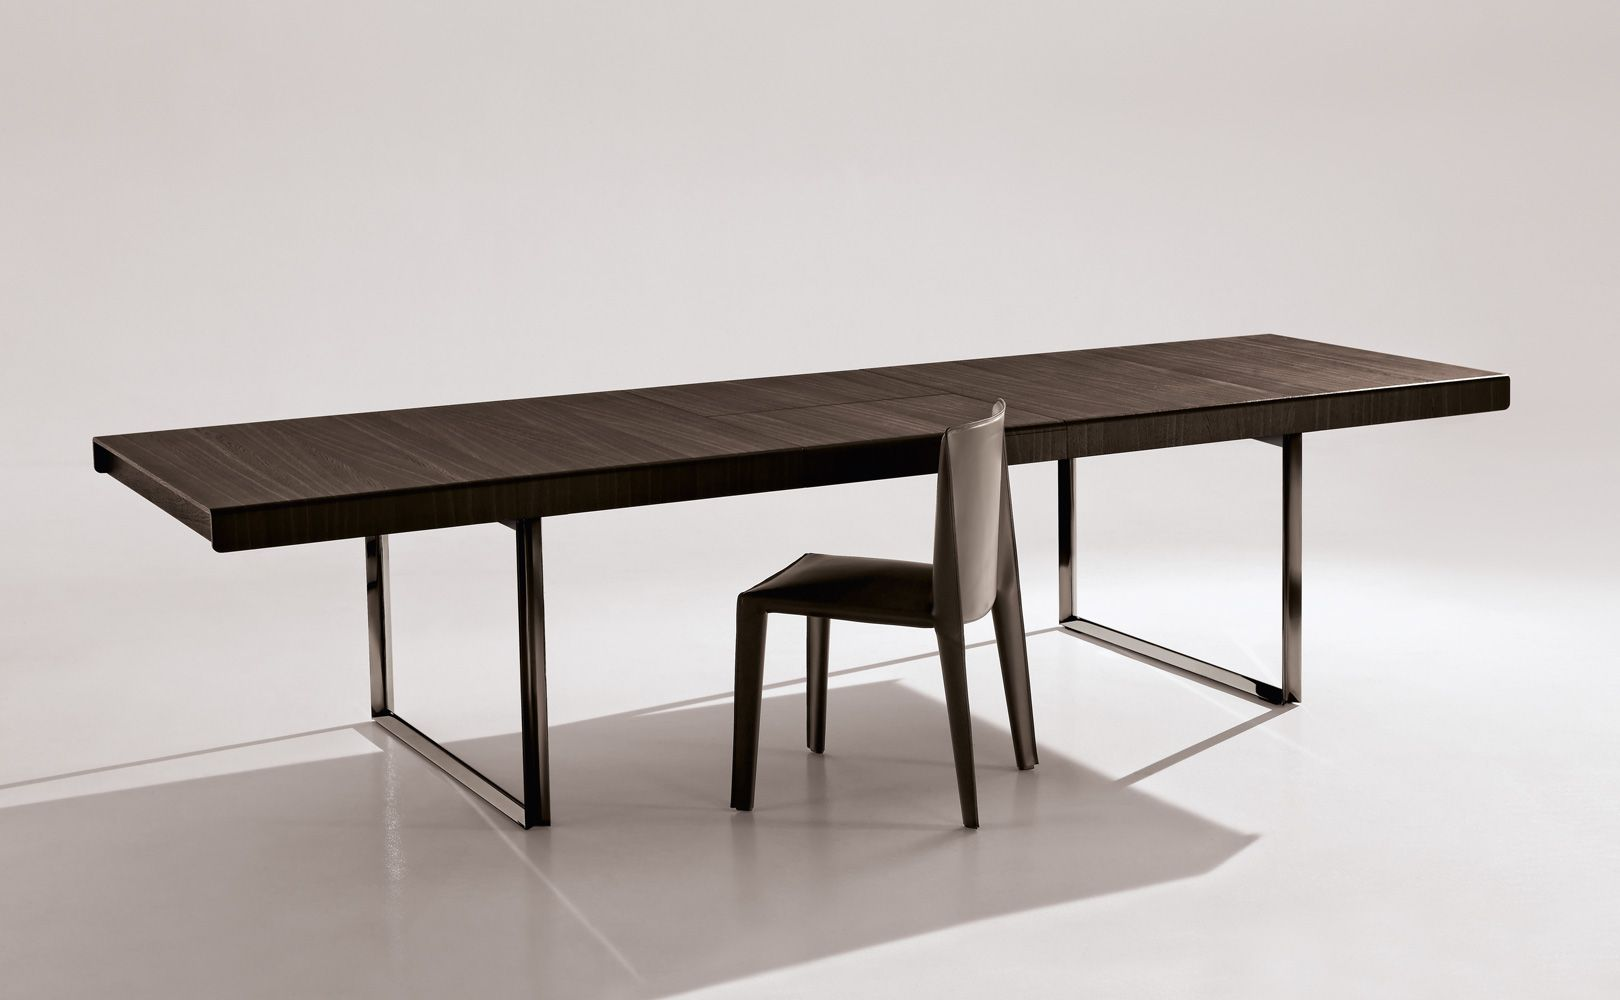 Athos 12 Dining Table. Designed by Paolo Piva for B Italia.